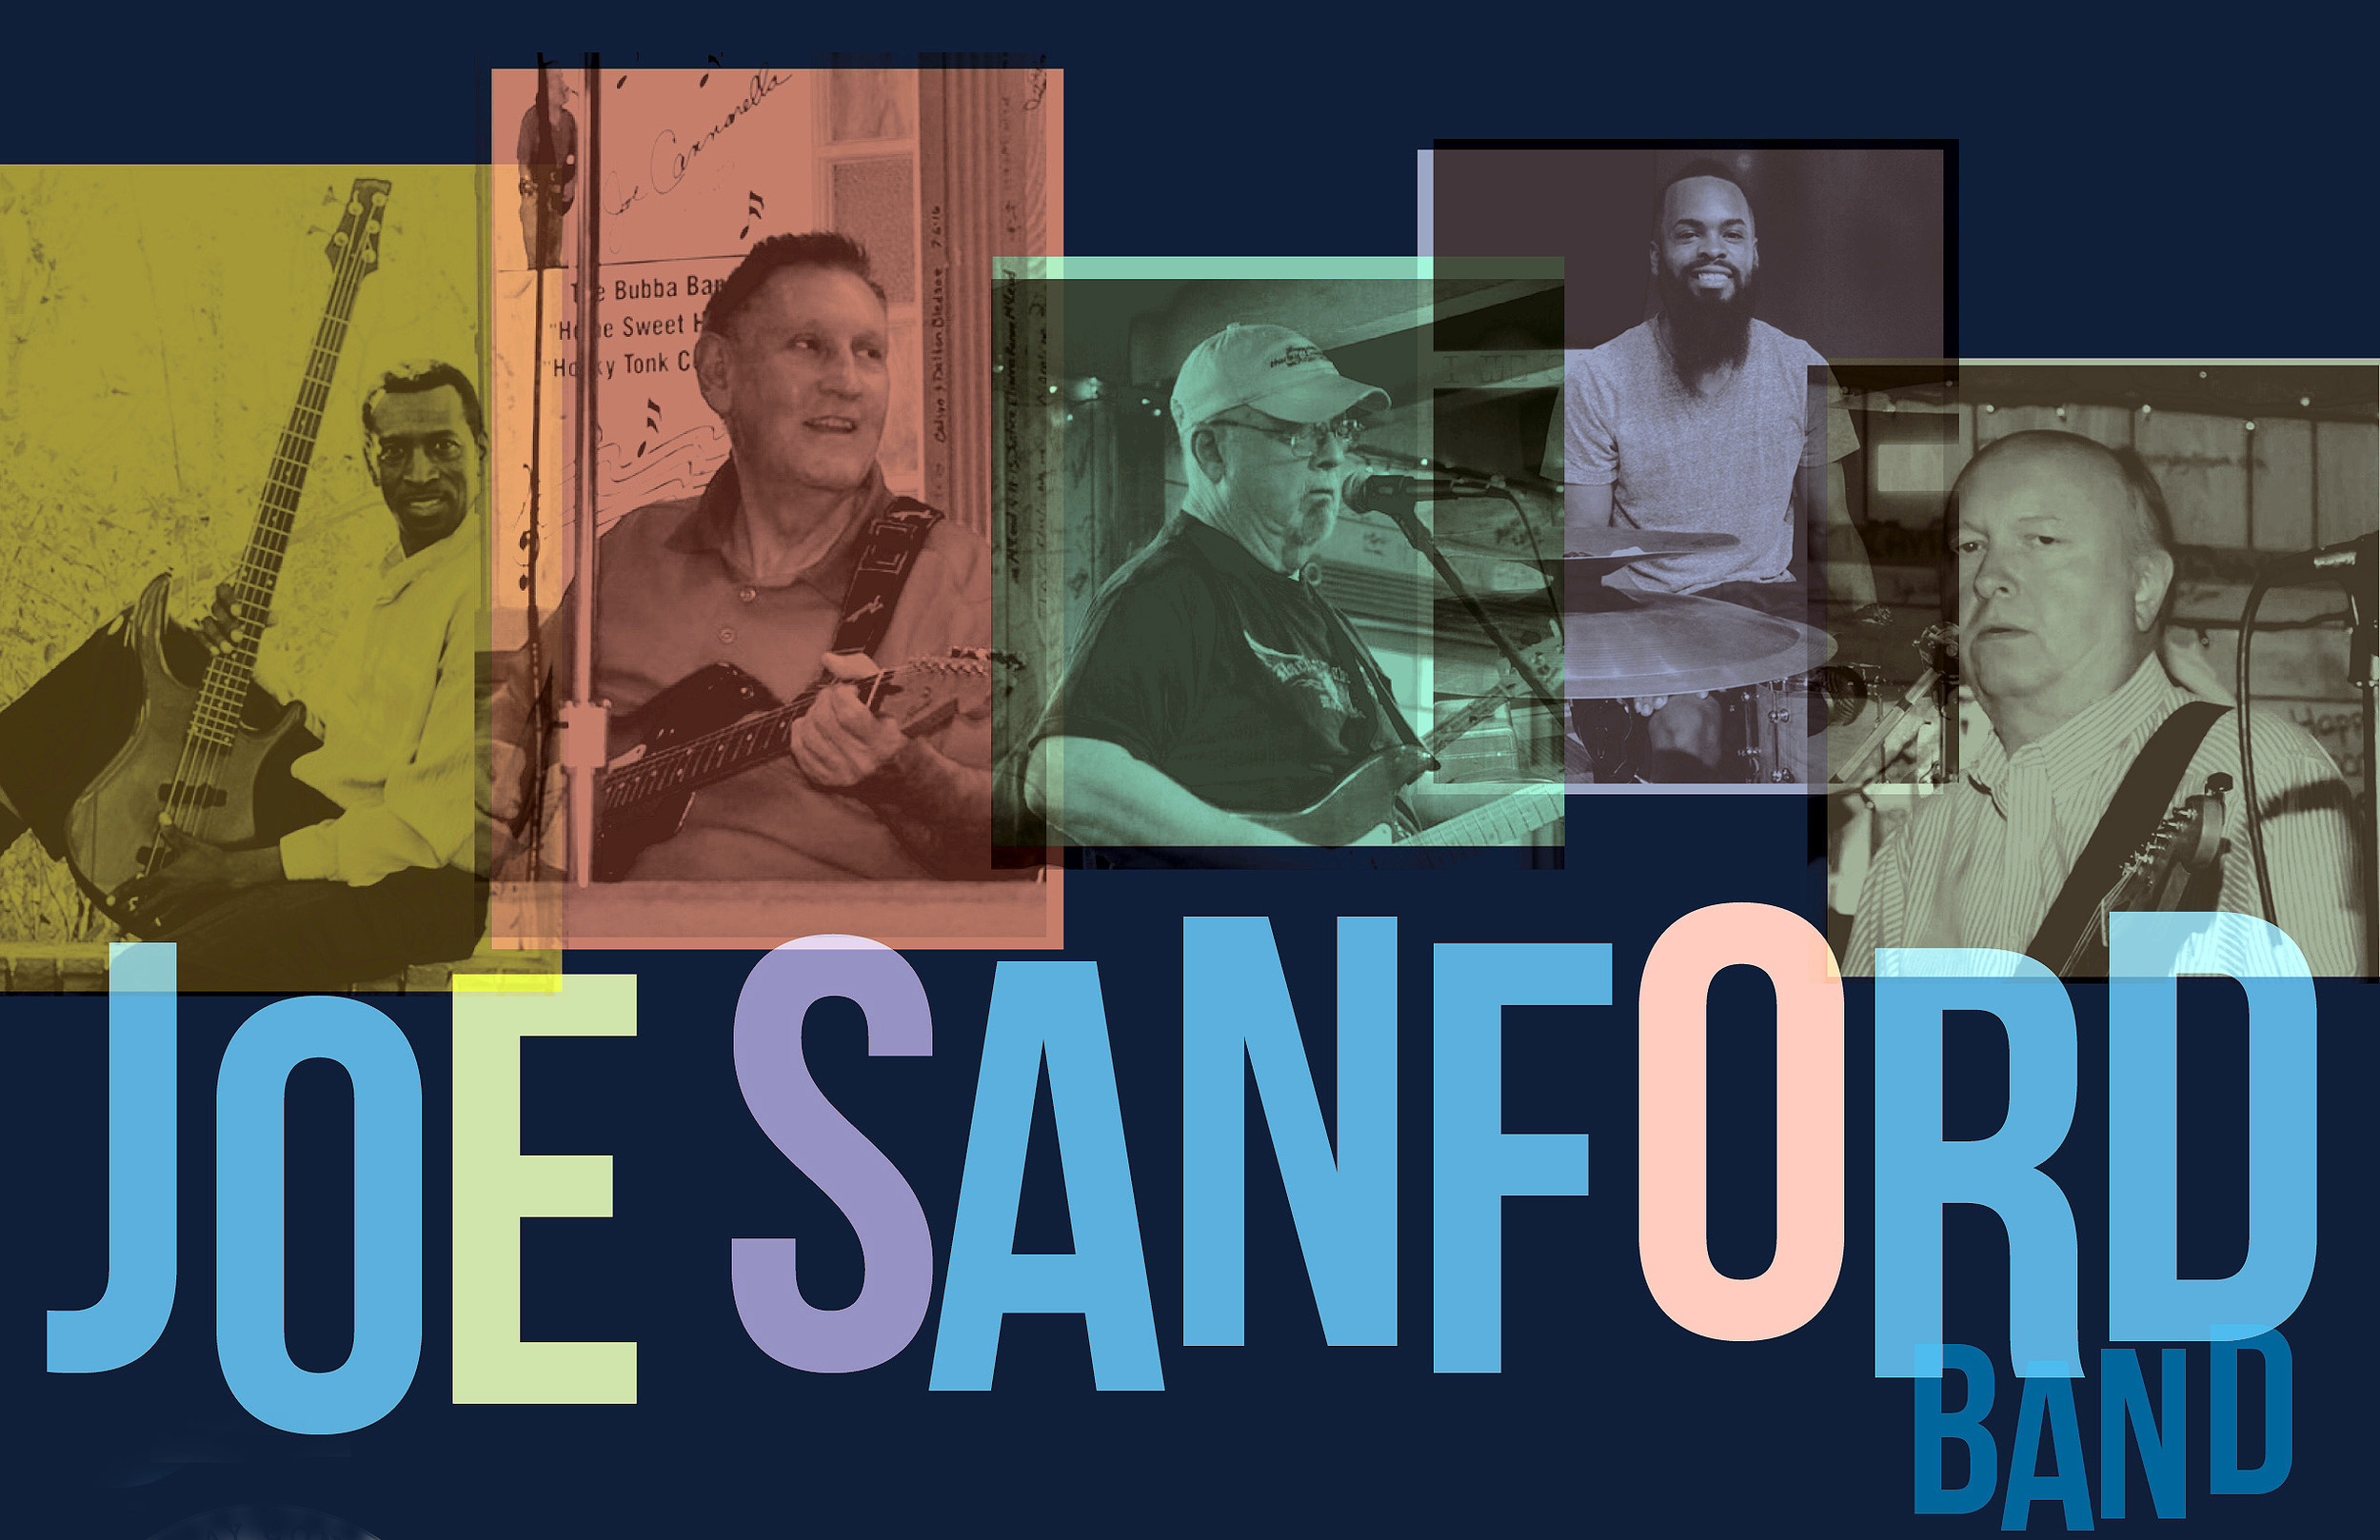 The Joe Sanford Band will play a concert of mainly blues and R&B when they take the stage on the Sumter County Courthouse lawn for Downtown Sumter's Fourth Fridays concert on July 28.